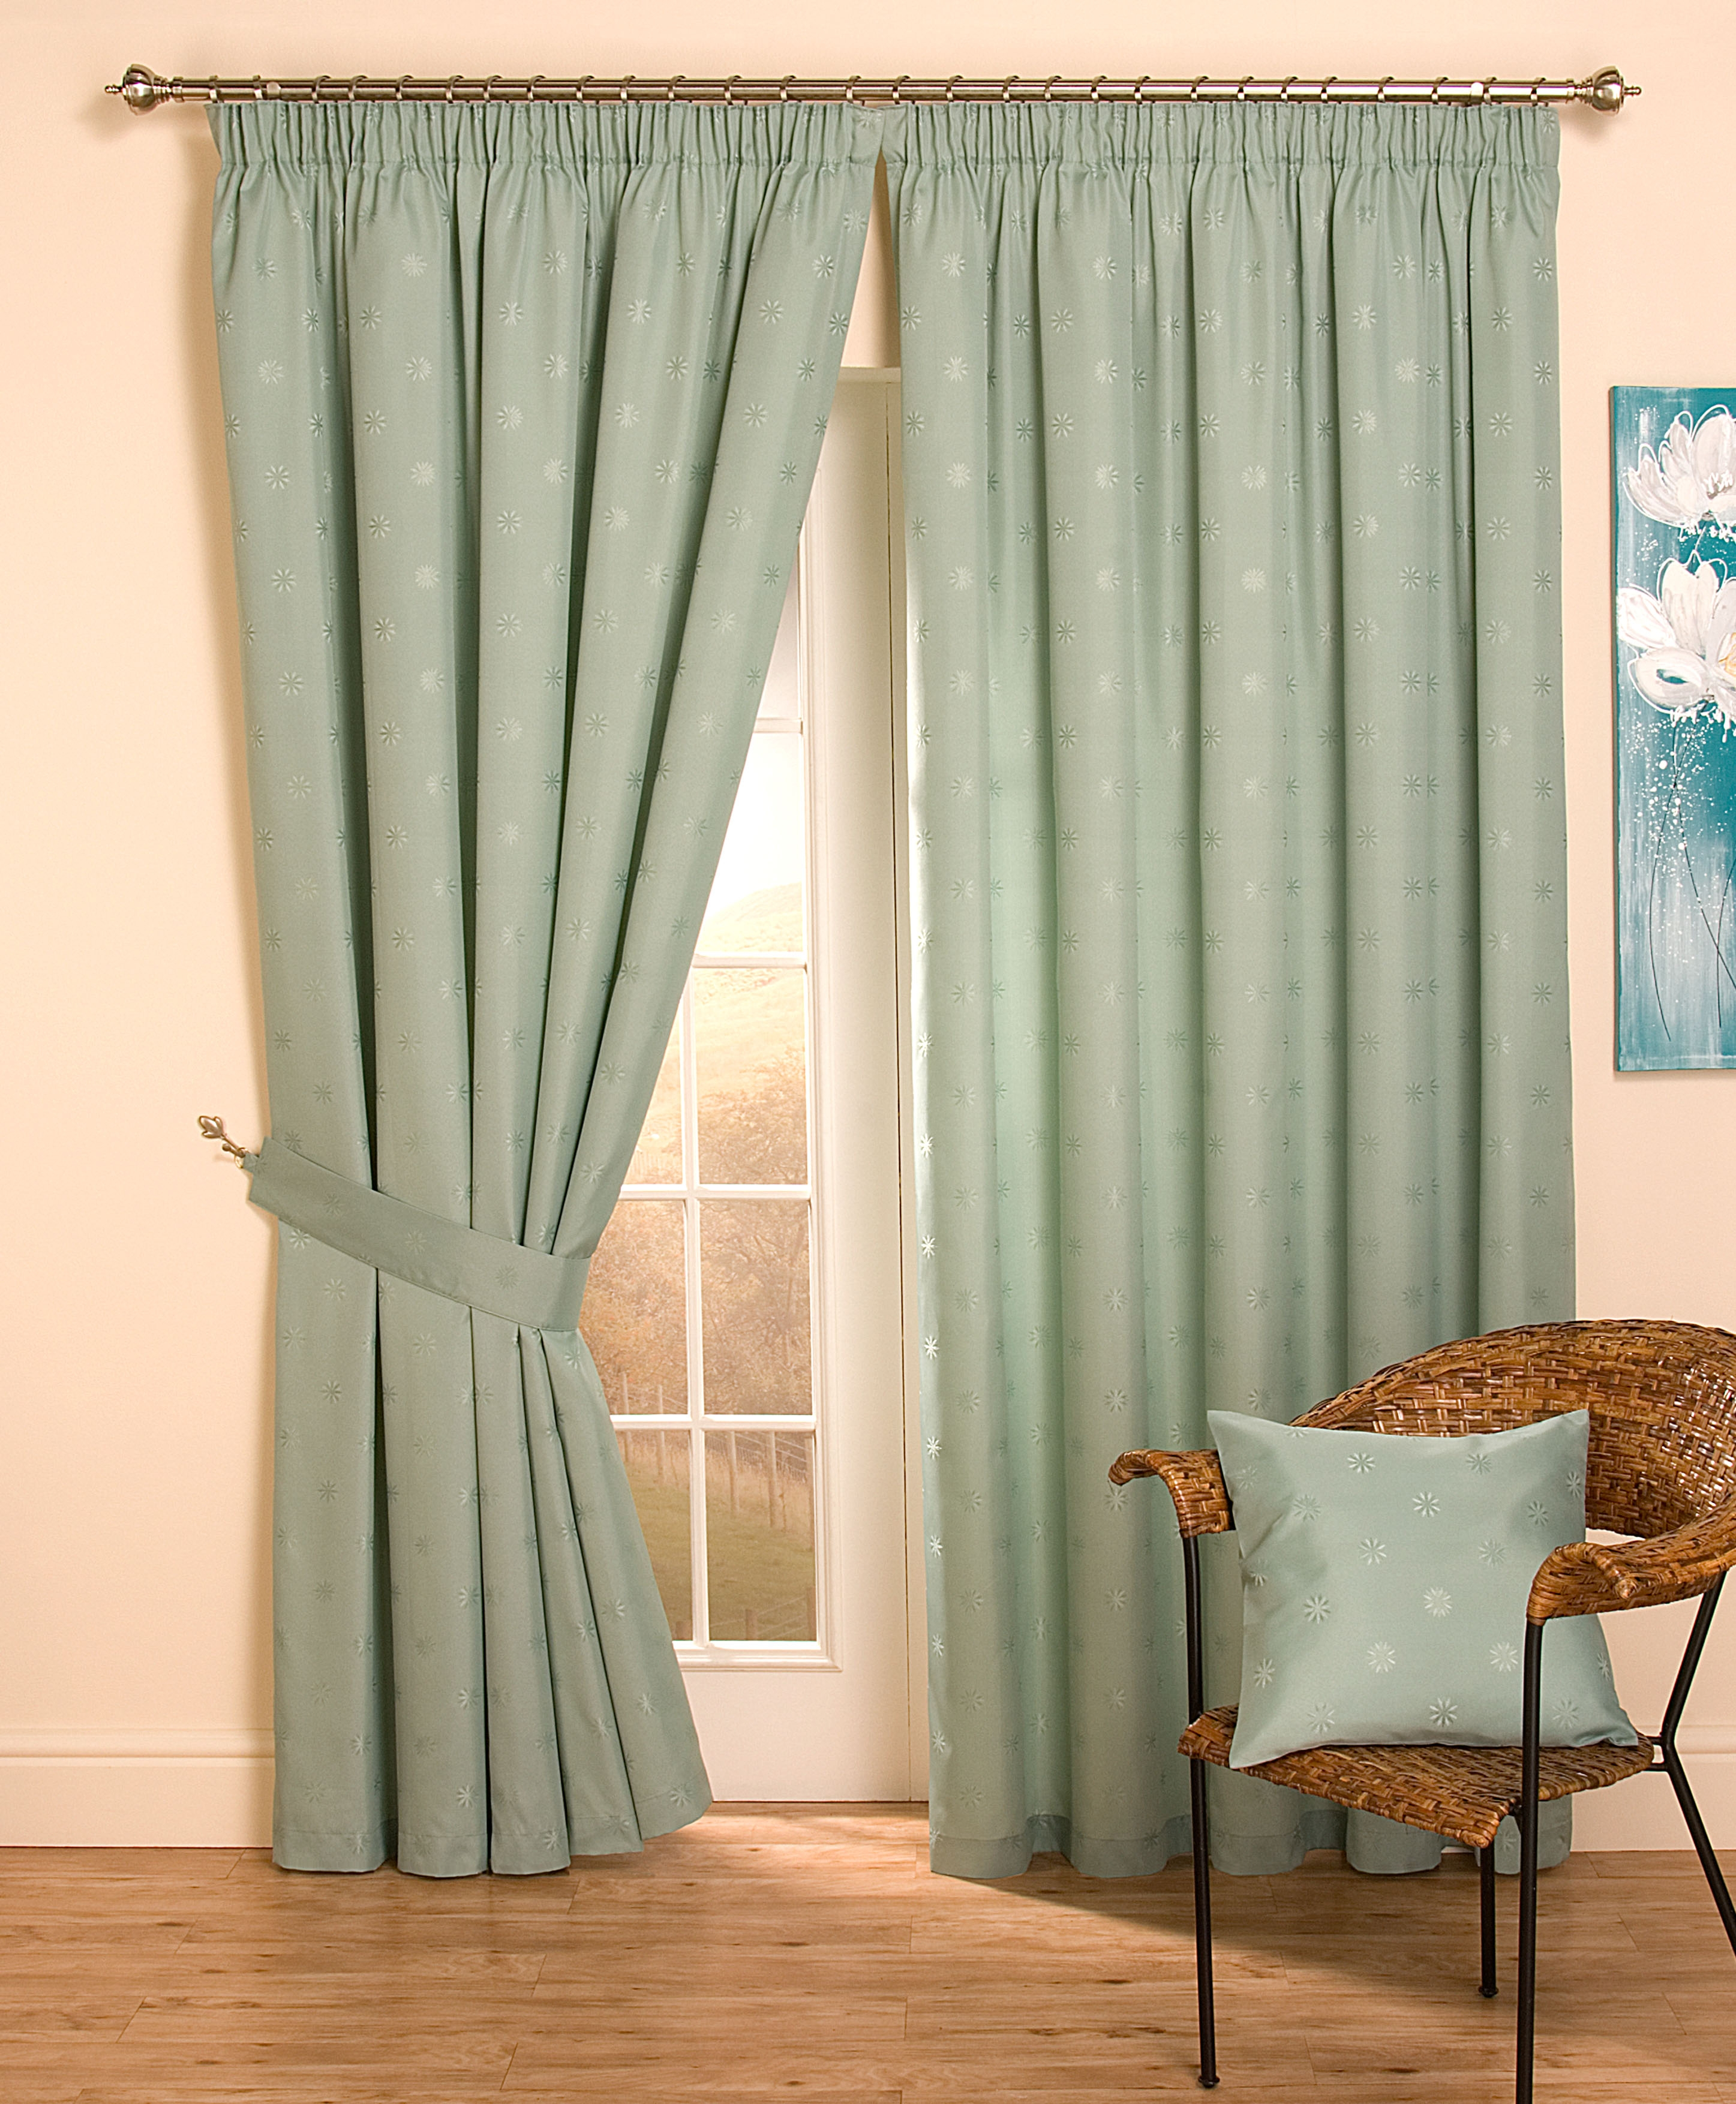 Blackout Thermal Curtains Pencil Pleat Best Curtains 2017 Inside Thermal Lined Drapes (Image 4 of 15)